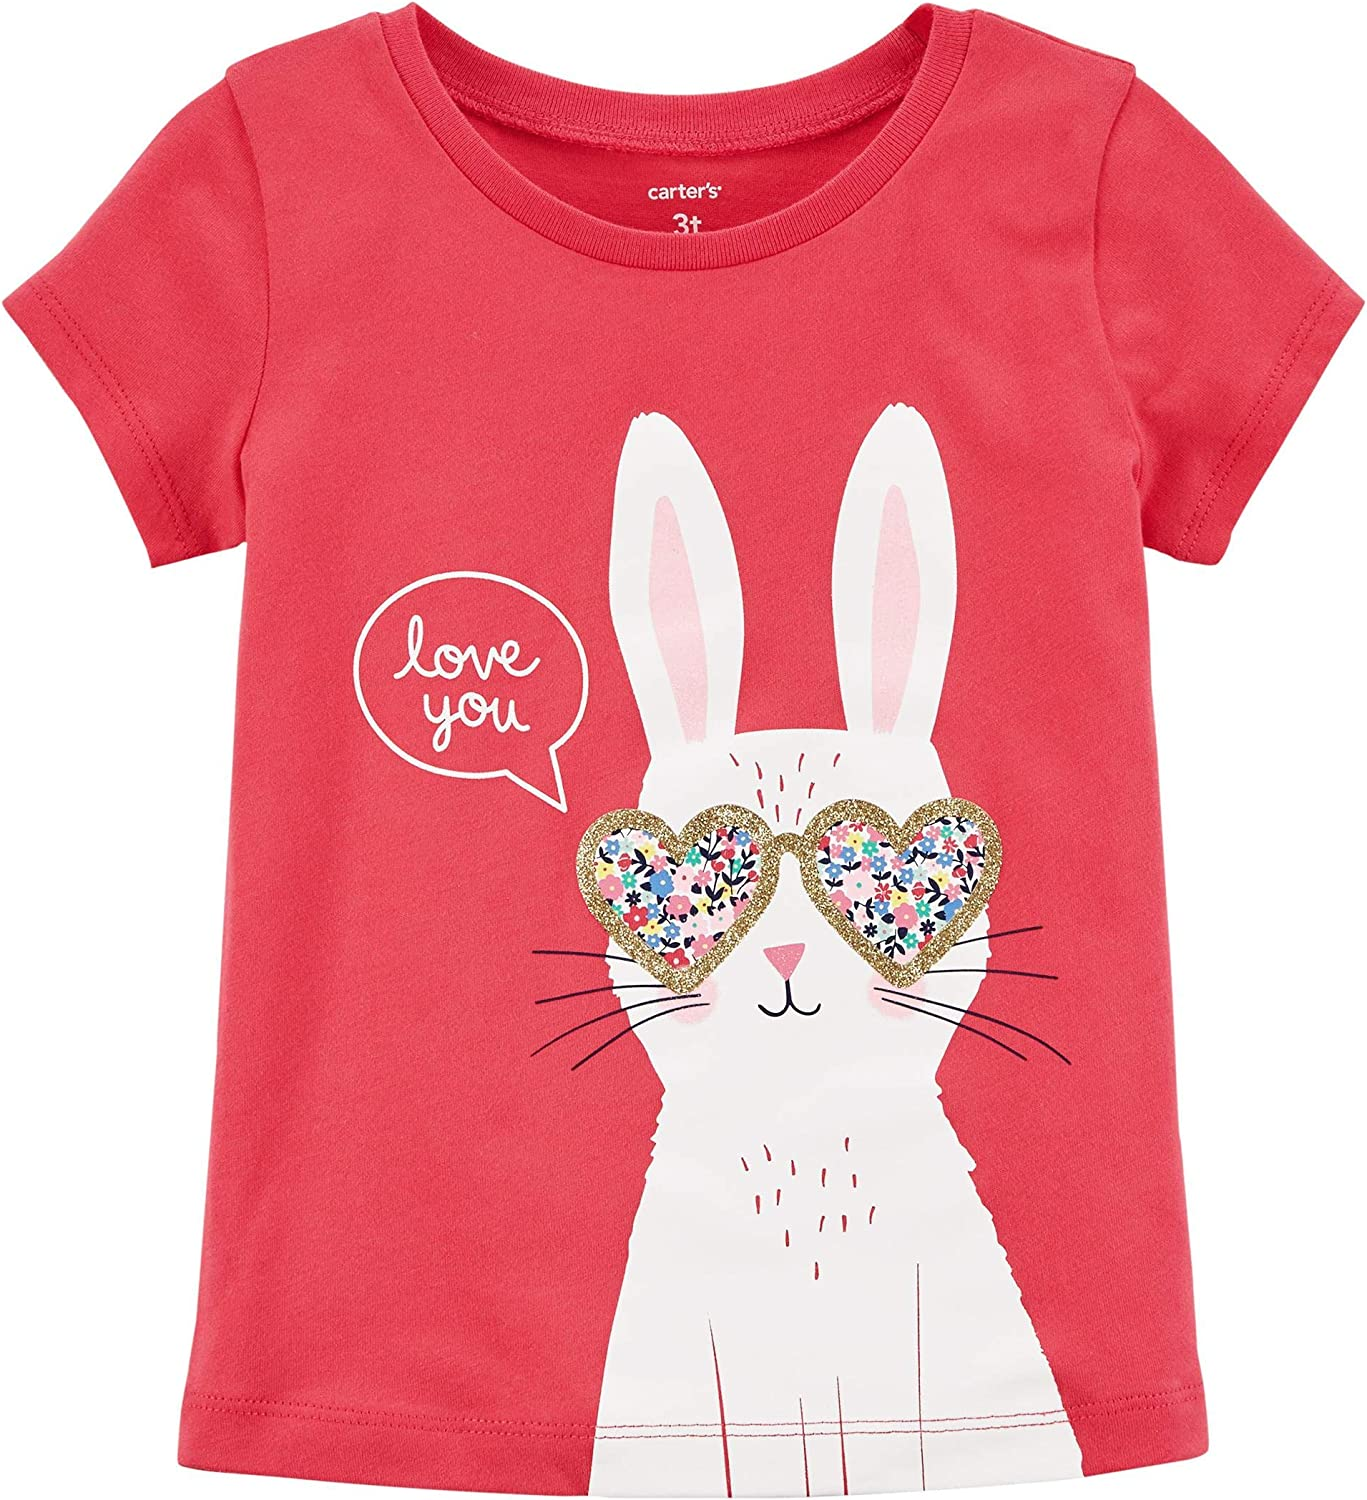 Carter's Girls' Love You Jersey Tee, Red, 6m